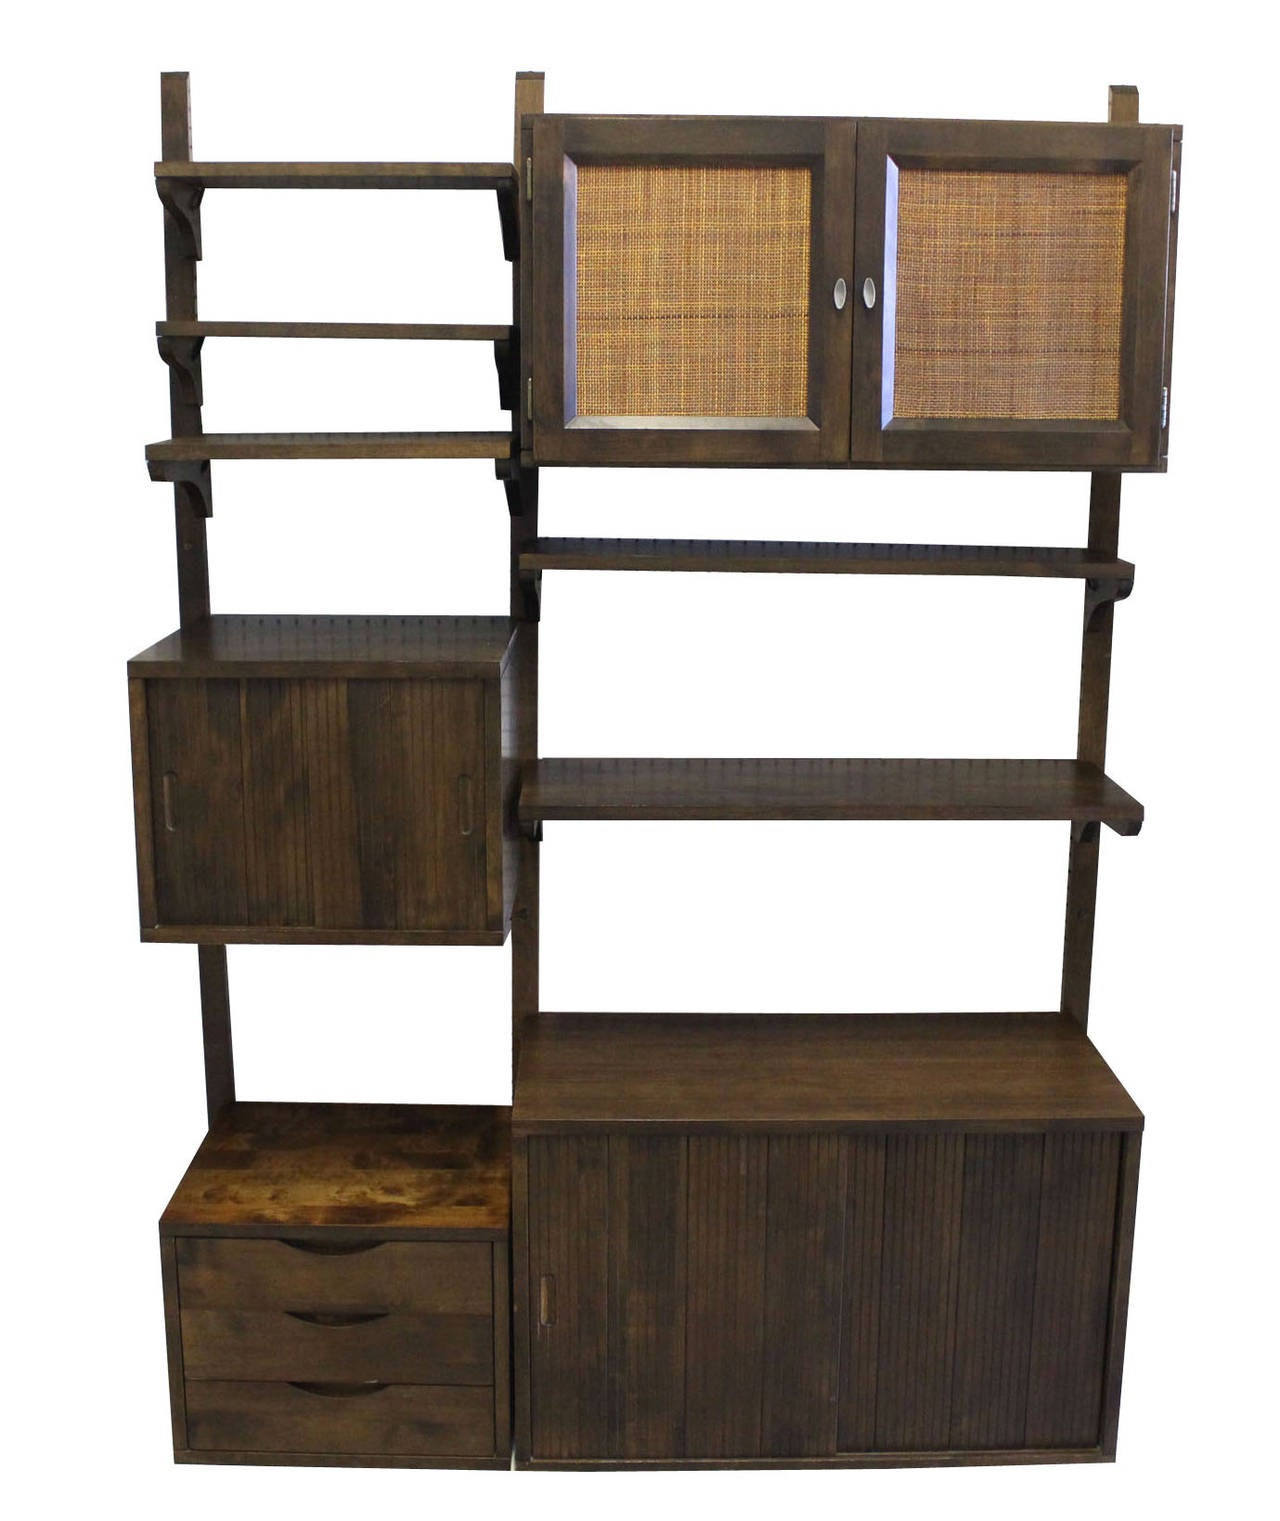 bookcase furniture bookcases products laminate shelf des low global group high ca df two